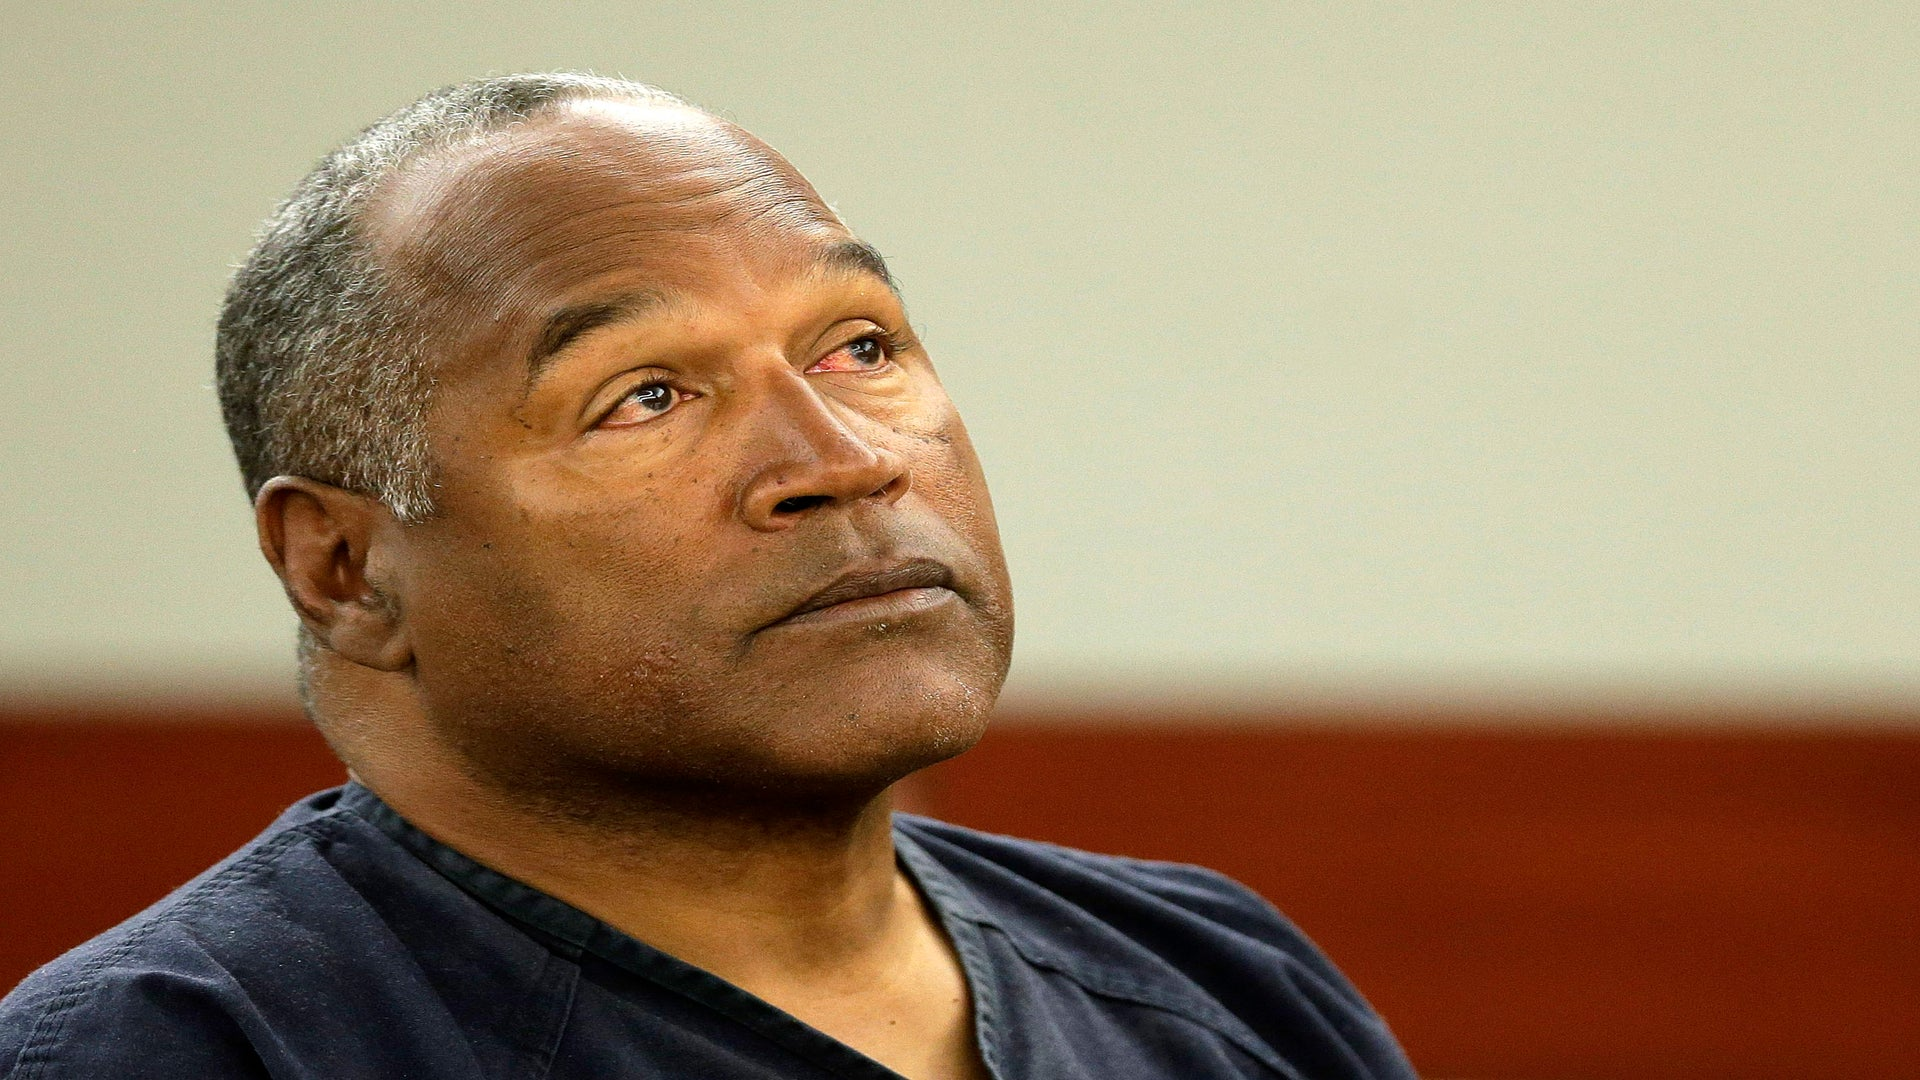 'Nothing Has Changed': O.J. Simpson Speaks For The First Time After Being Released From Prison